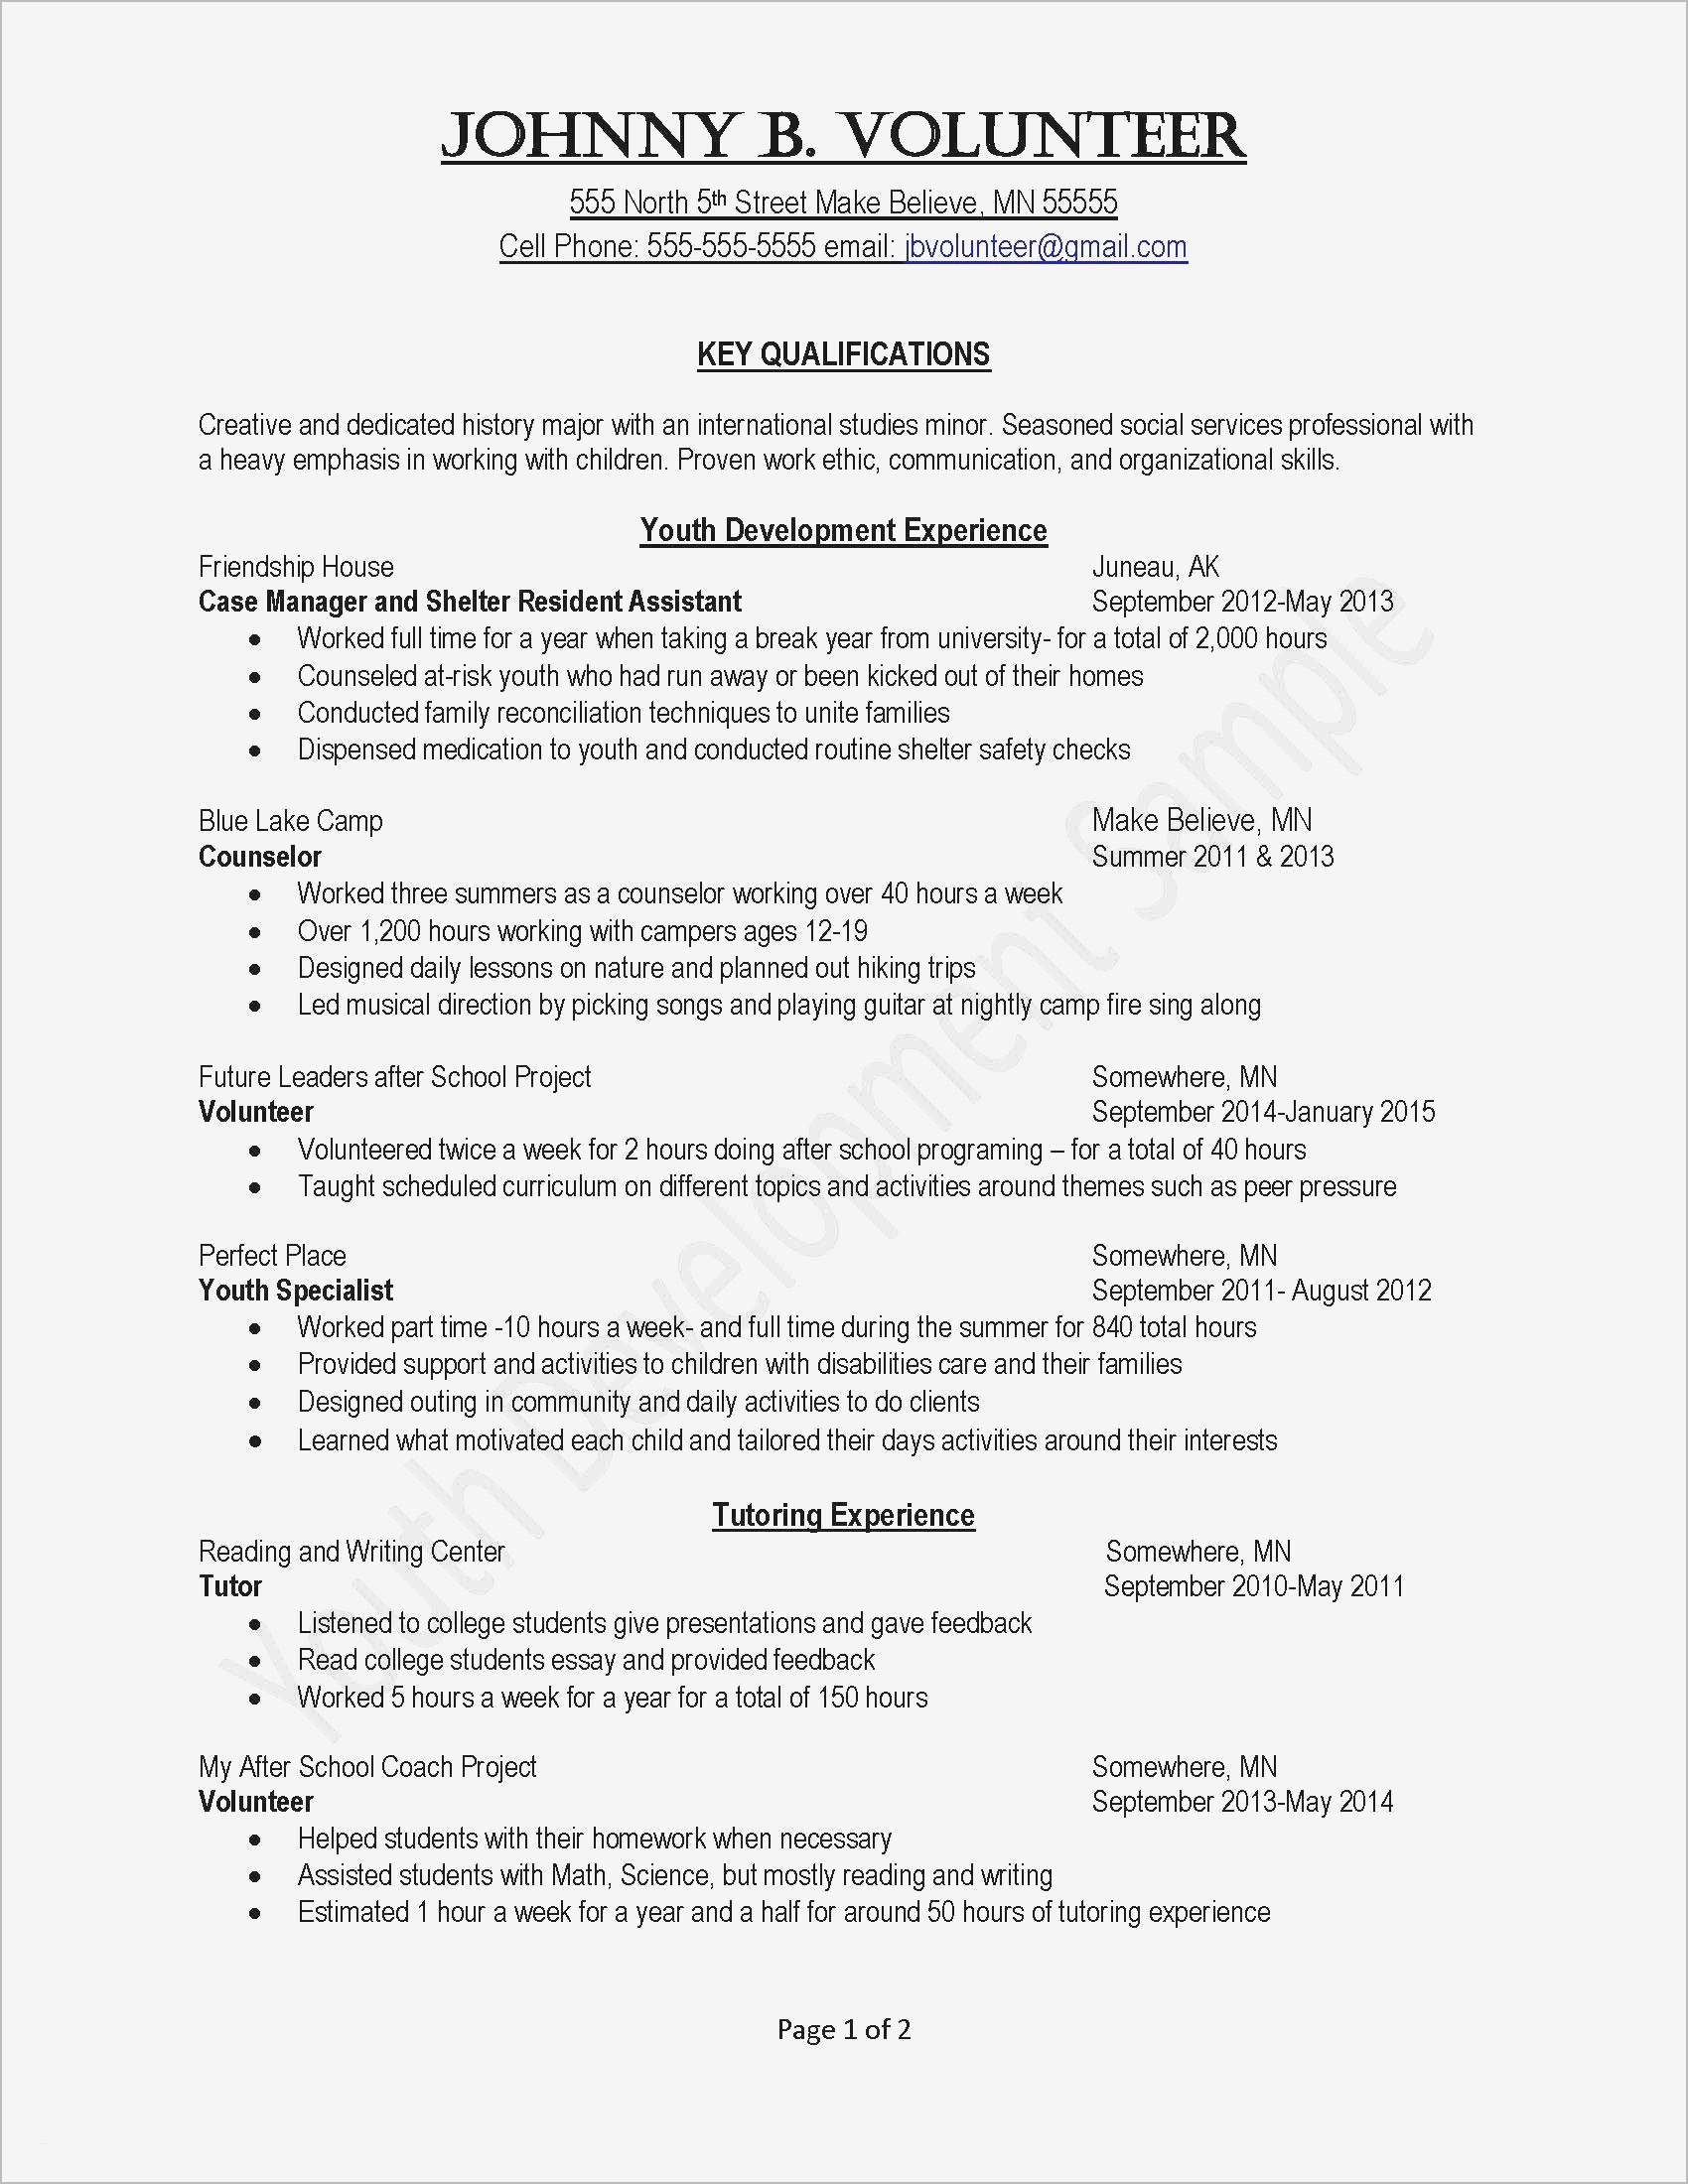 legal cover letter template Collection-Job fer Letter Template Us Copy Od Consultant Cover Letter Fungram New 21 Resume Templates for 15-h